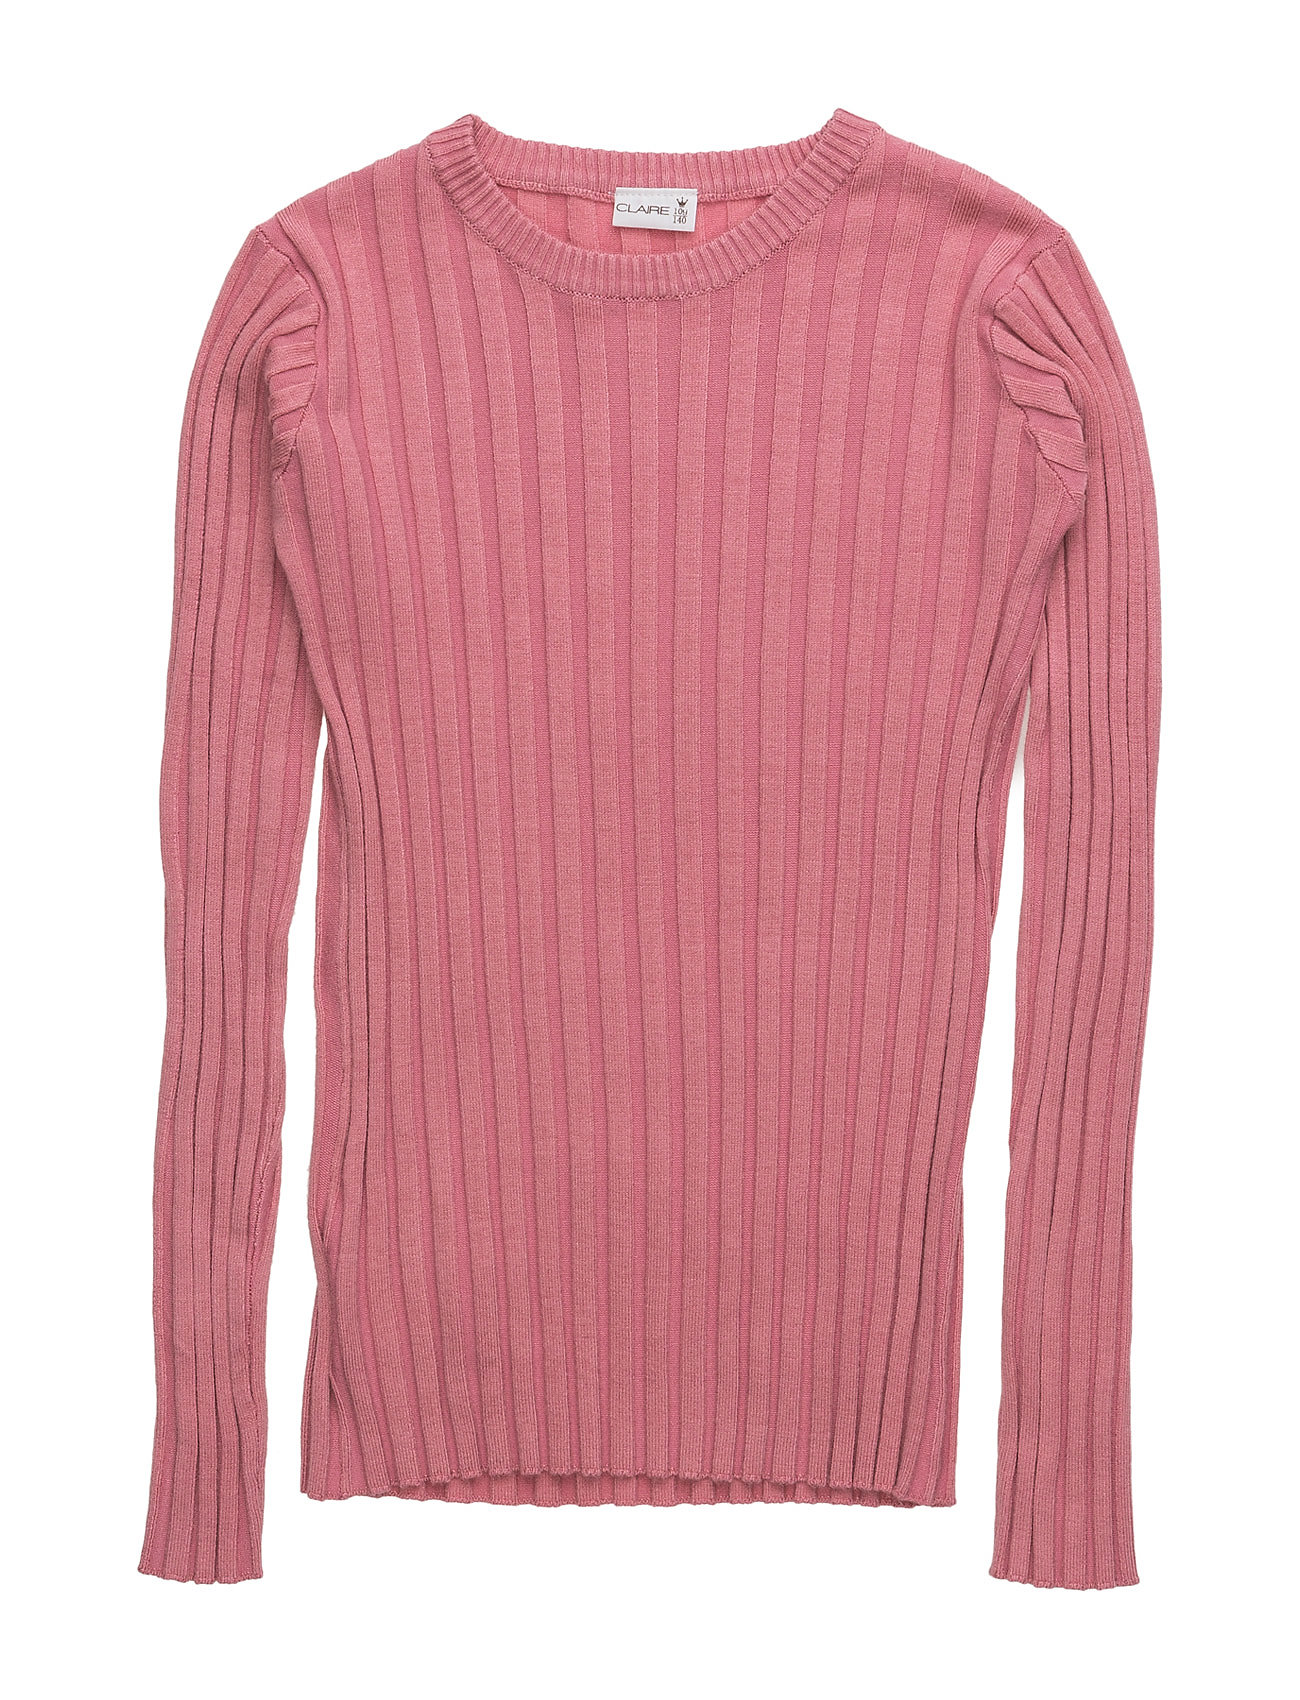 Knit Pullover Hust & Claire